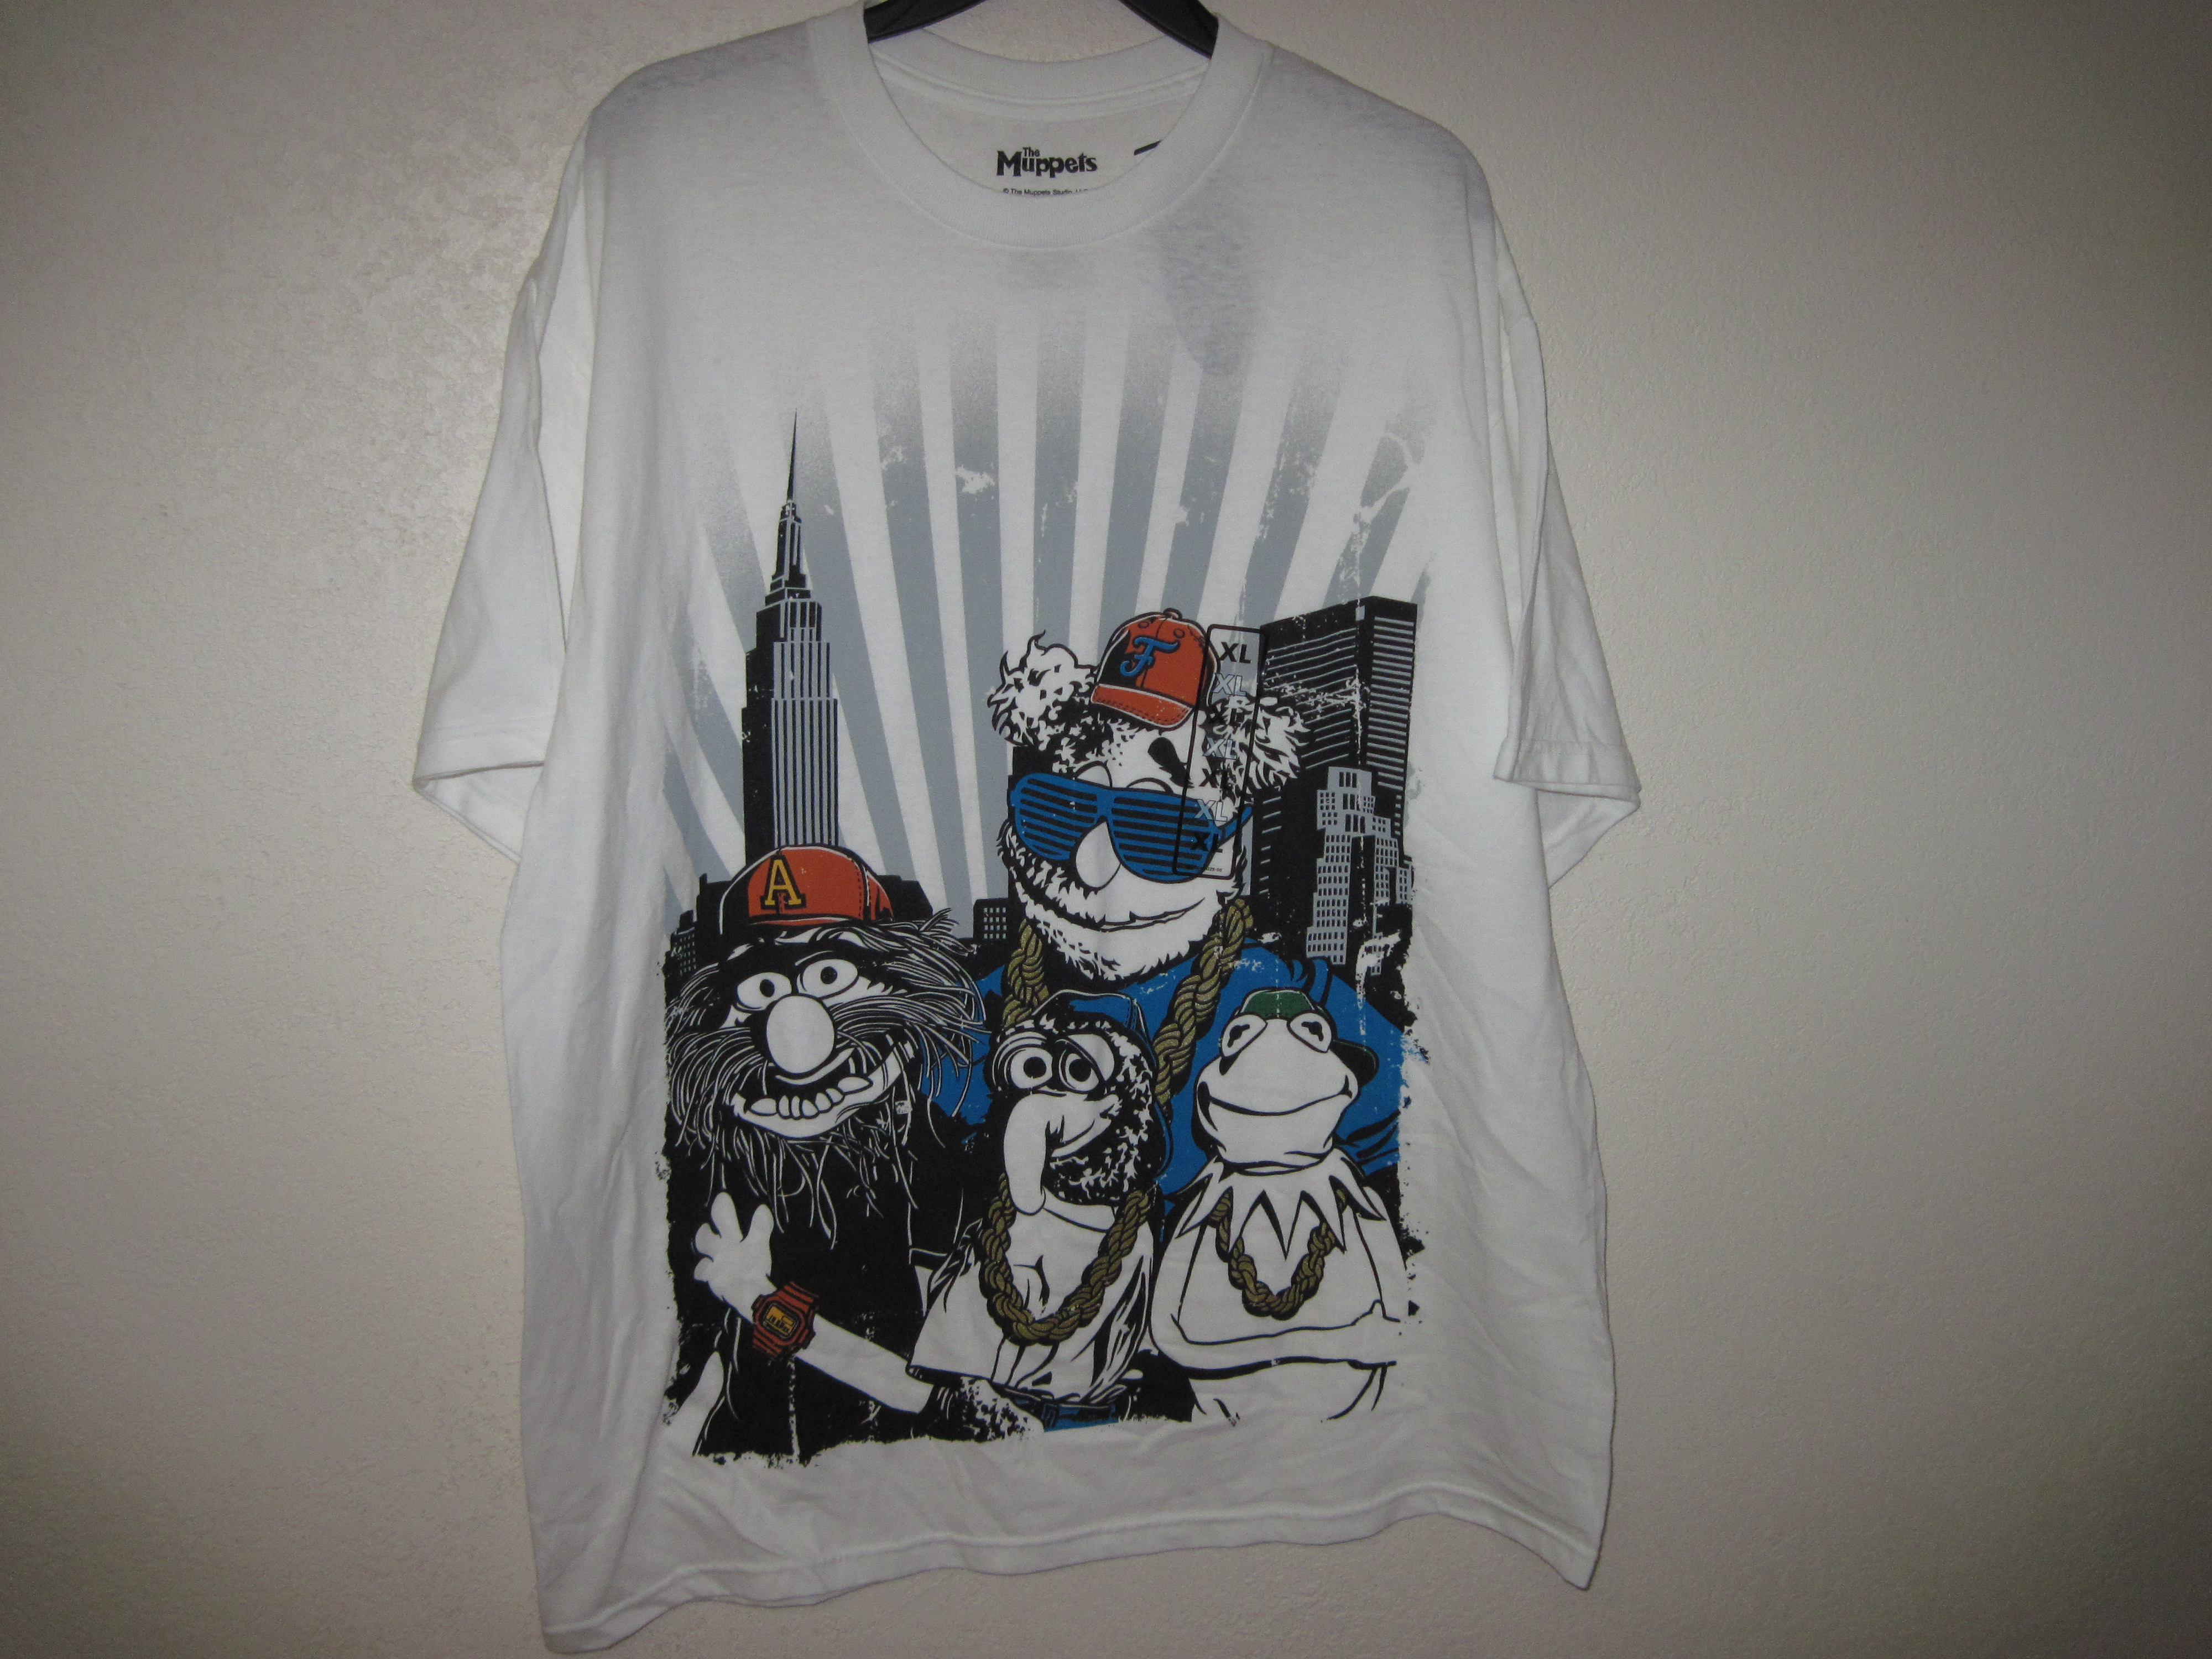 The Muppets Sz S Short Sleeve T-Shirt crew love, white